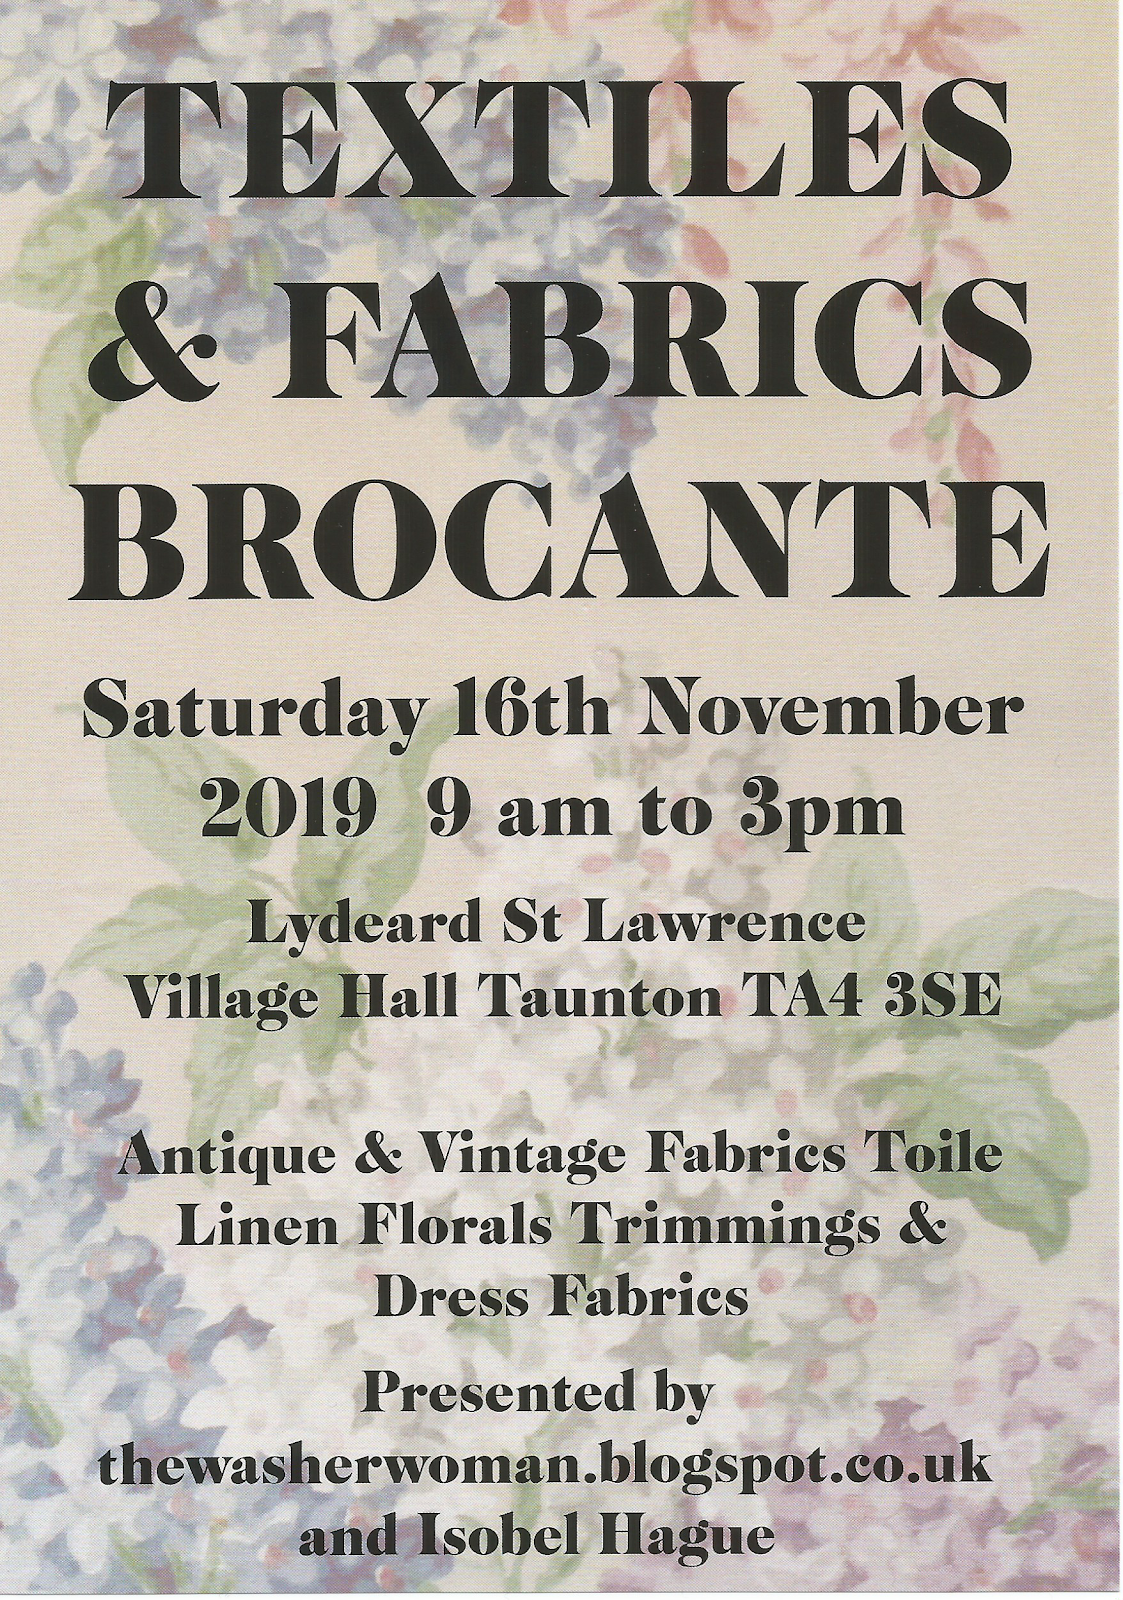 Textiles and Fabric Brocante